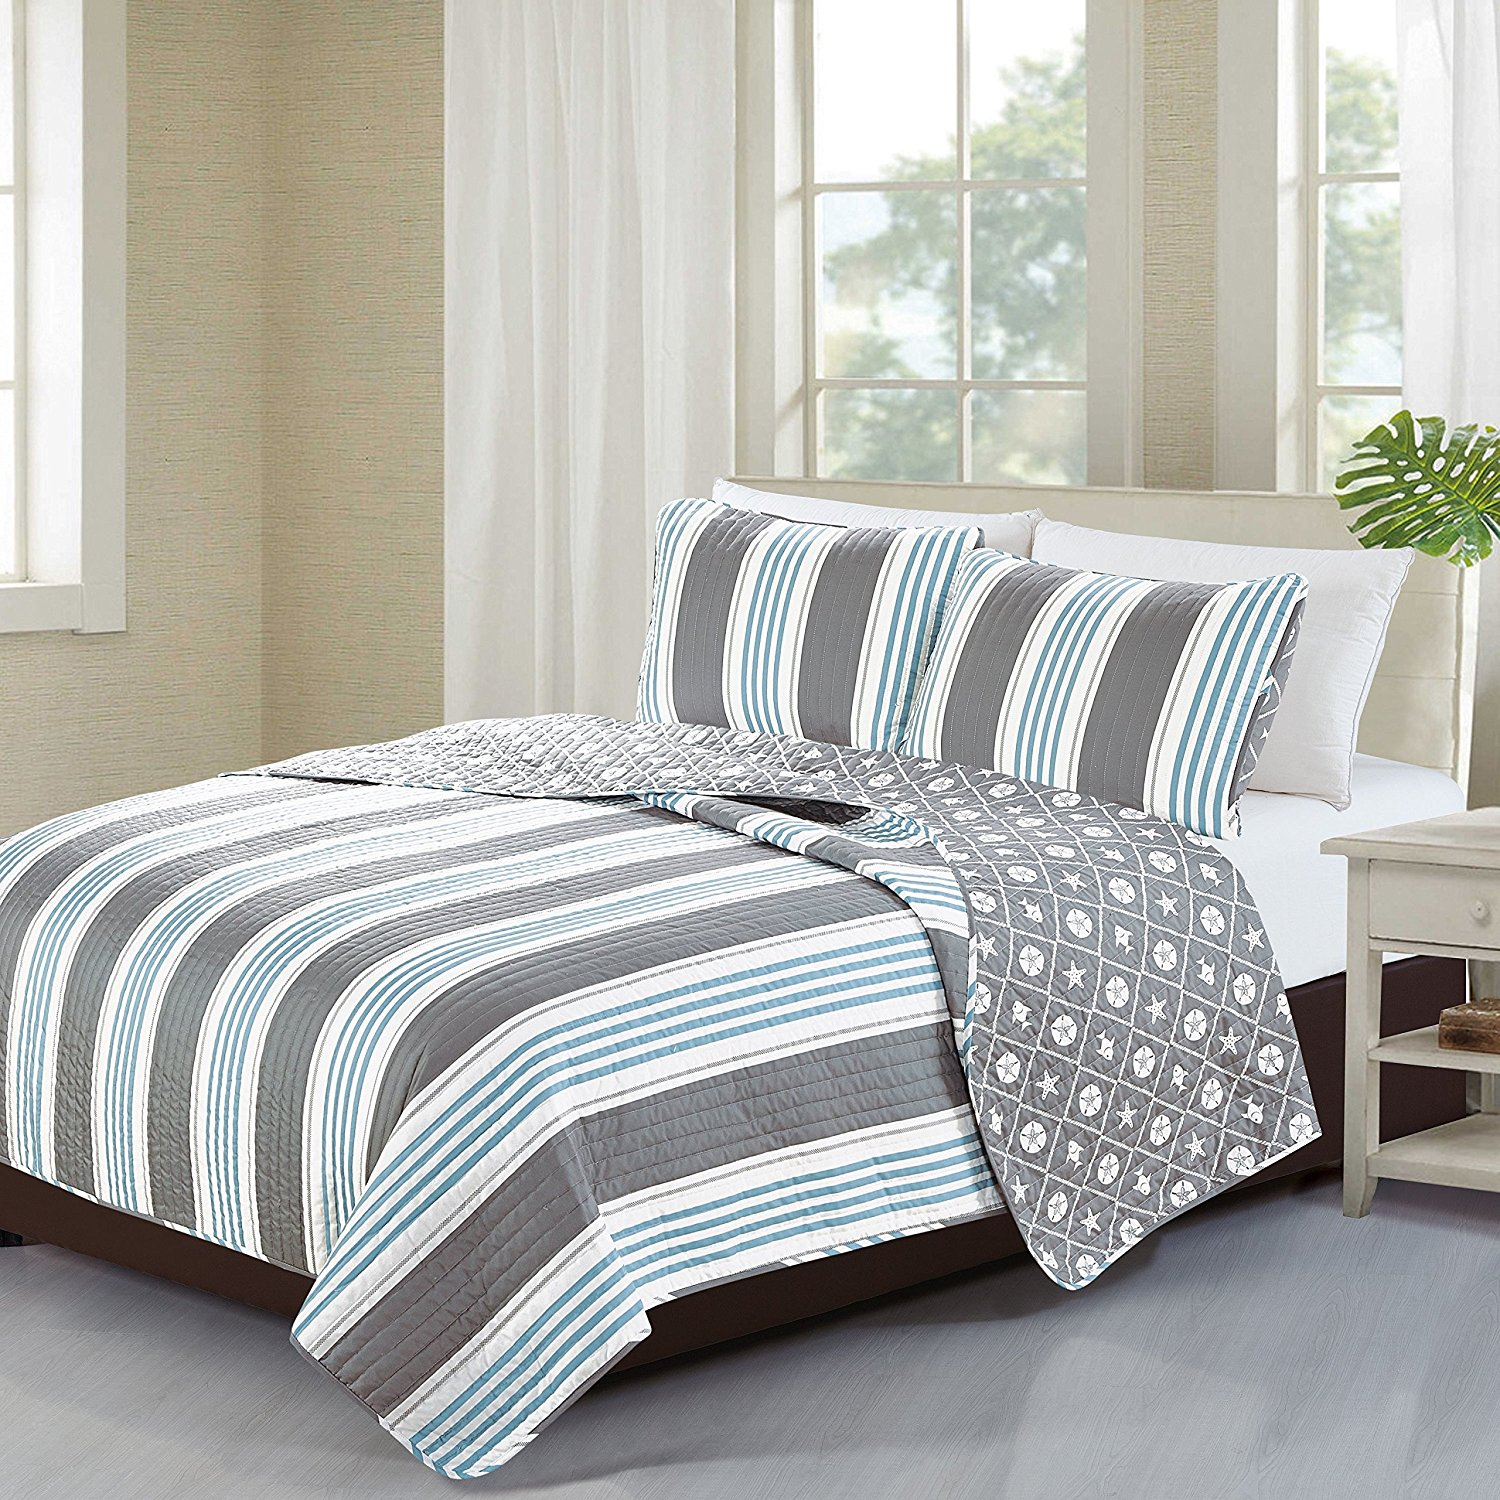 2 Piece Trendy Blue Teal Grey White Twin Quilt Set, Beach Striped Themed Reversible Bedding Bright Seaside Starfish Sand Dollar Nature Classic Cottage Lake House Stylish Coastal Nautical, Cotton